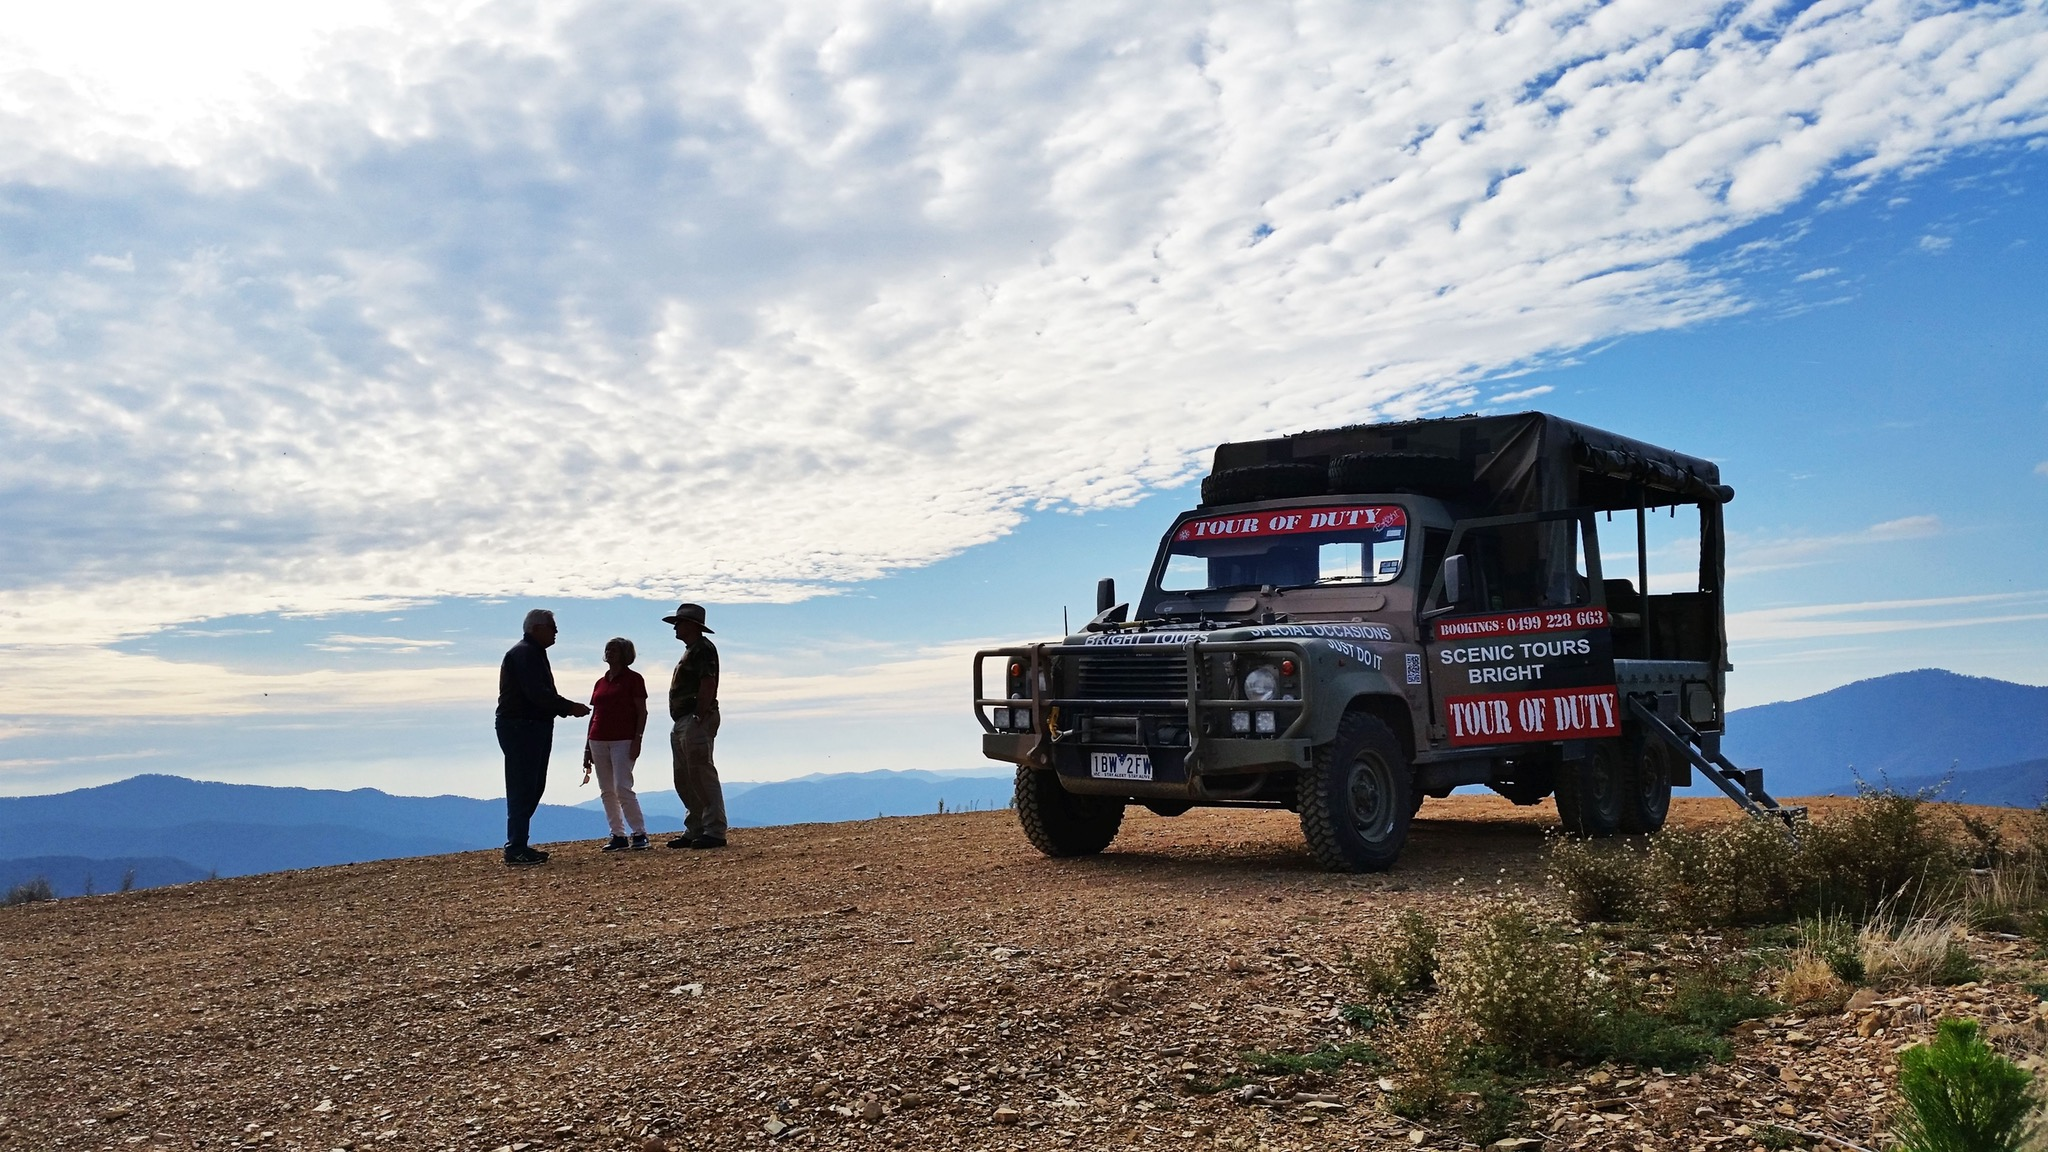 360degree views with local knowledge from your Guide Allan